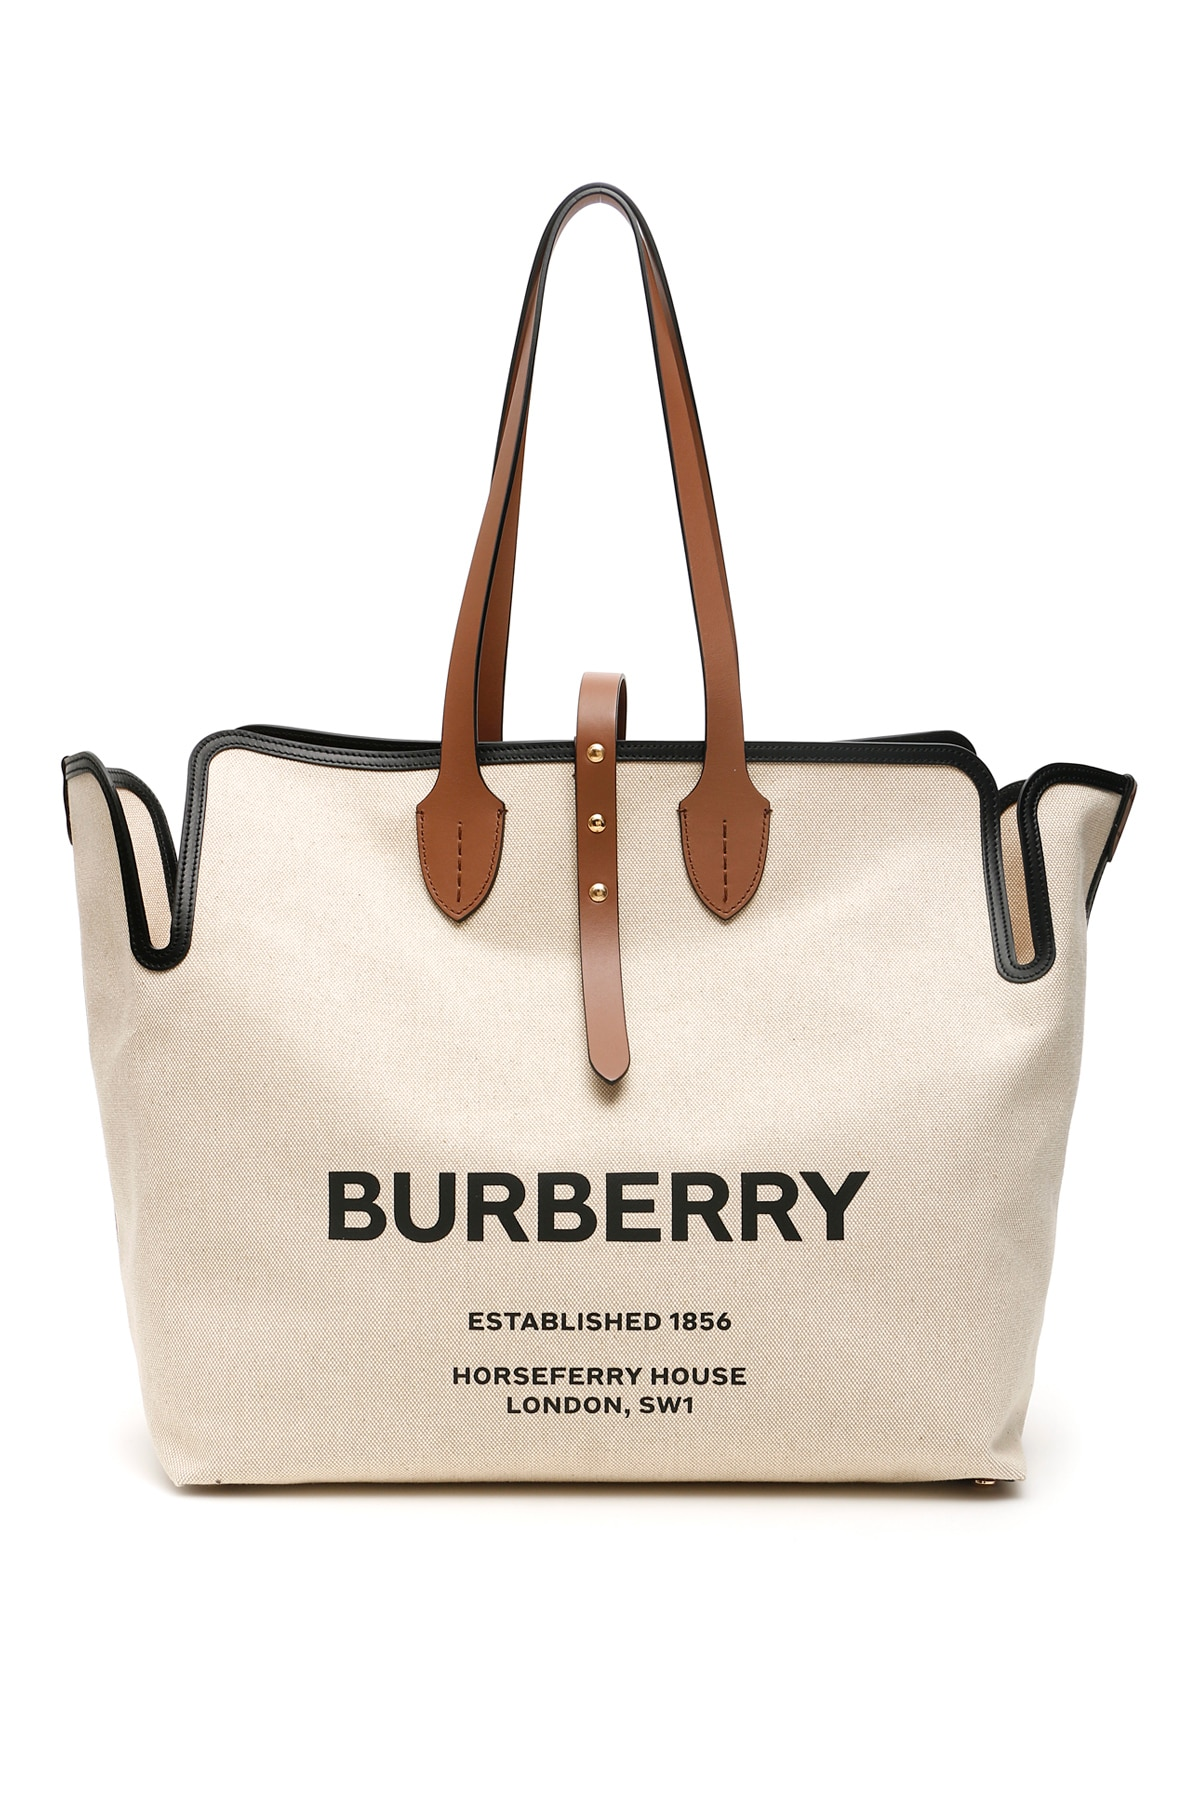 BURBERRY LARGE SOFT BELT TOTE BAG OS Beige Leather, Cotton